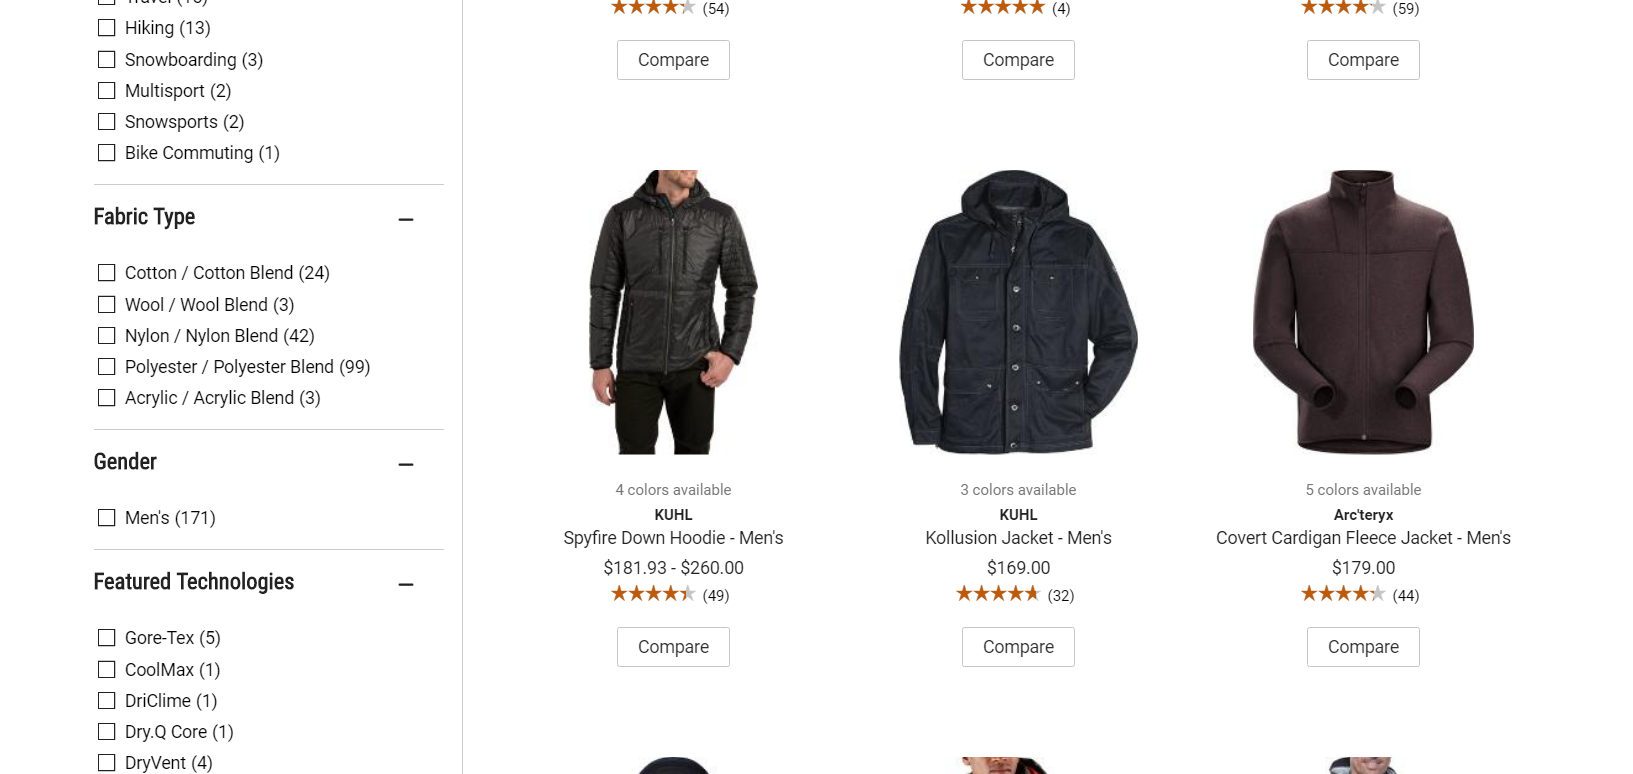 Trust Archives Matts Web Jaket Outwear Vest Cardigan Aristotle The Outdoor Retailer Rei Uses A Different Browse Page Template For Their Outlet Versus Main Store Here Is Stores Listing Of Jackets